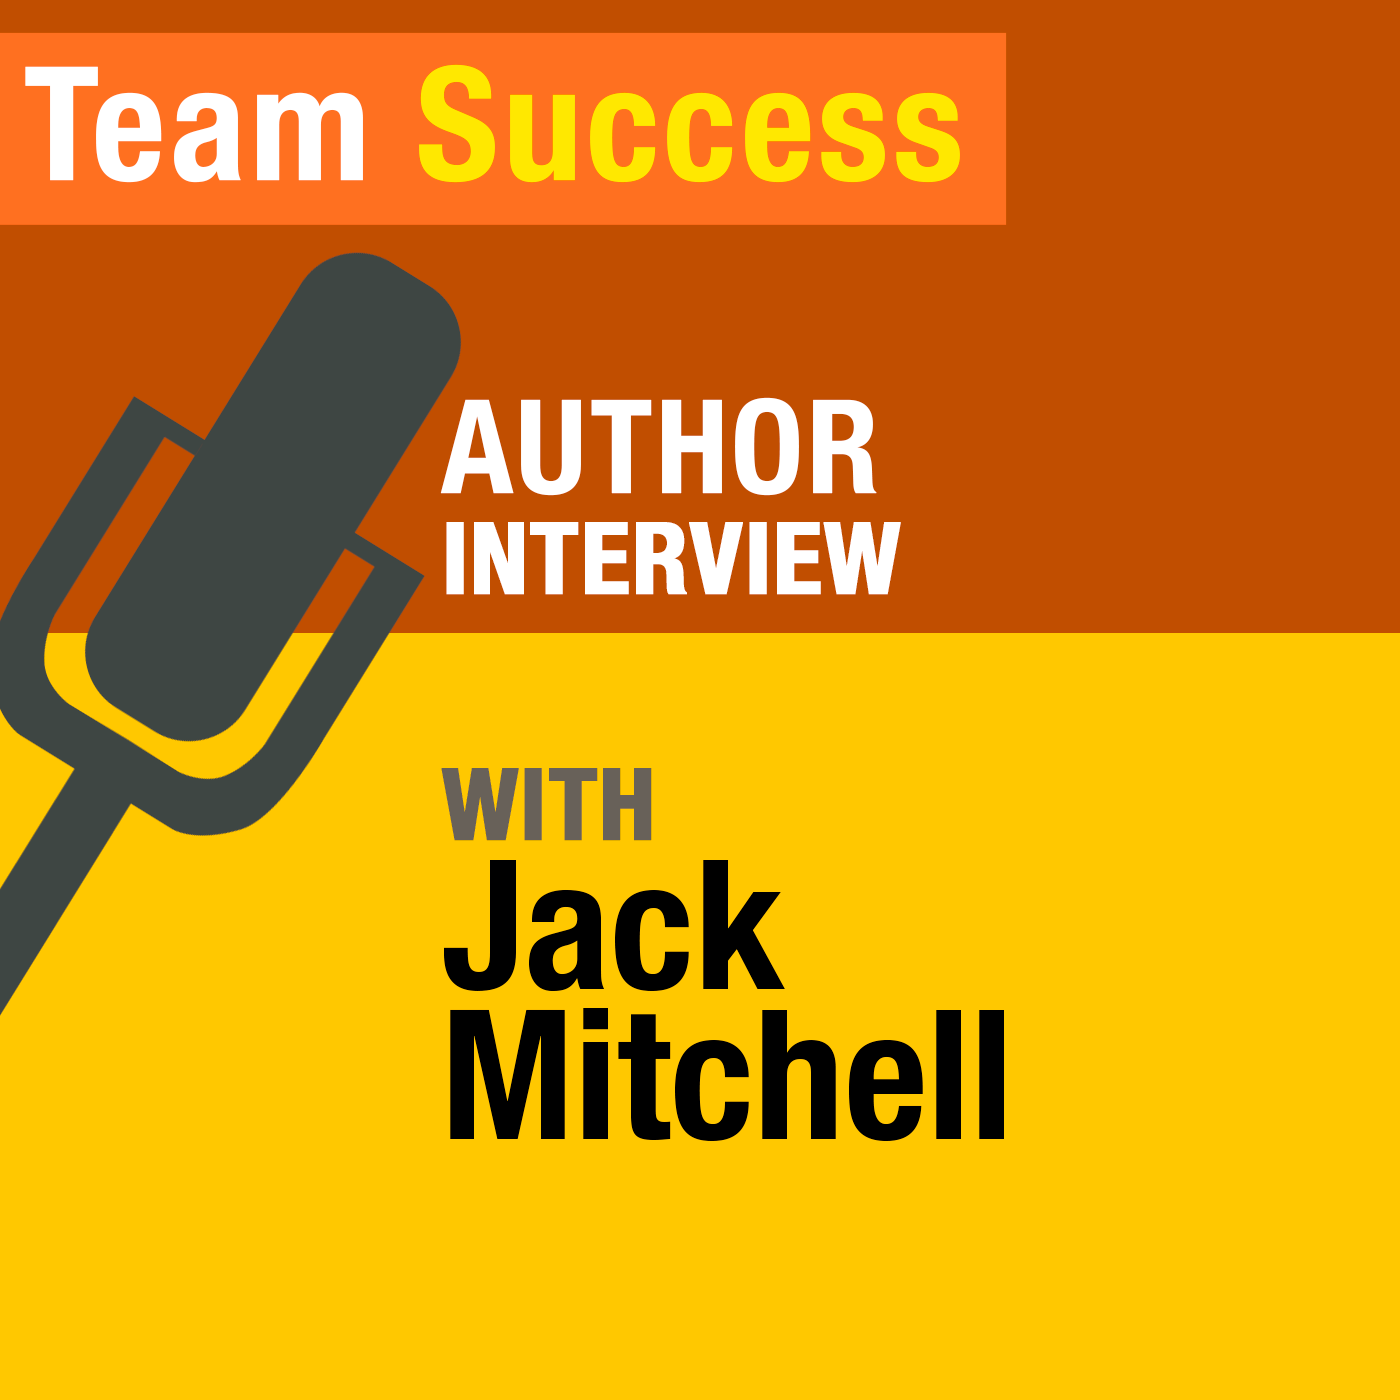 An Interview With Jack Mitchell - Team Success Podcast